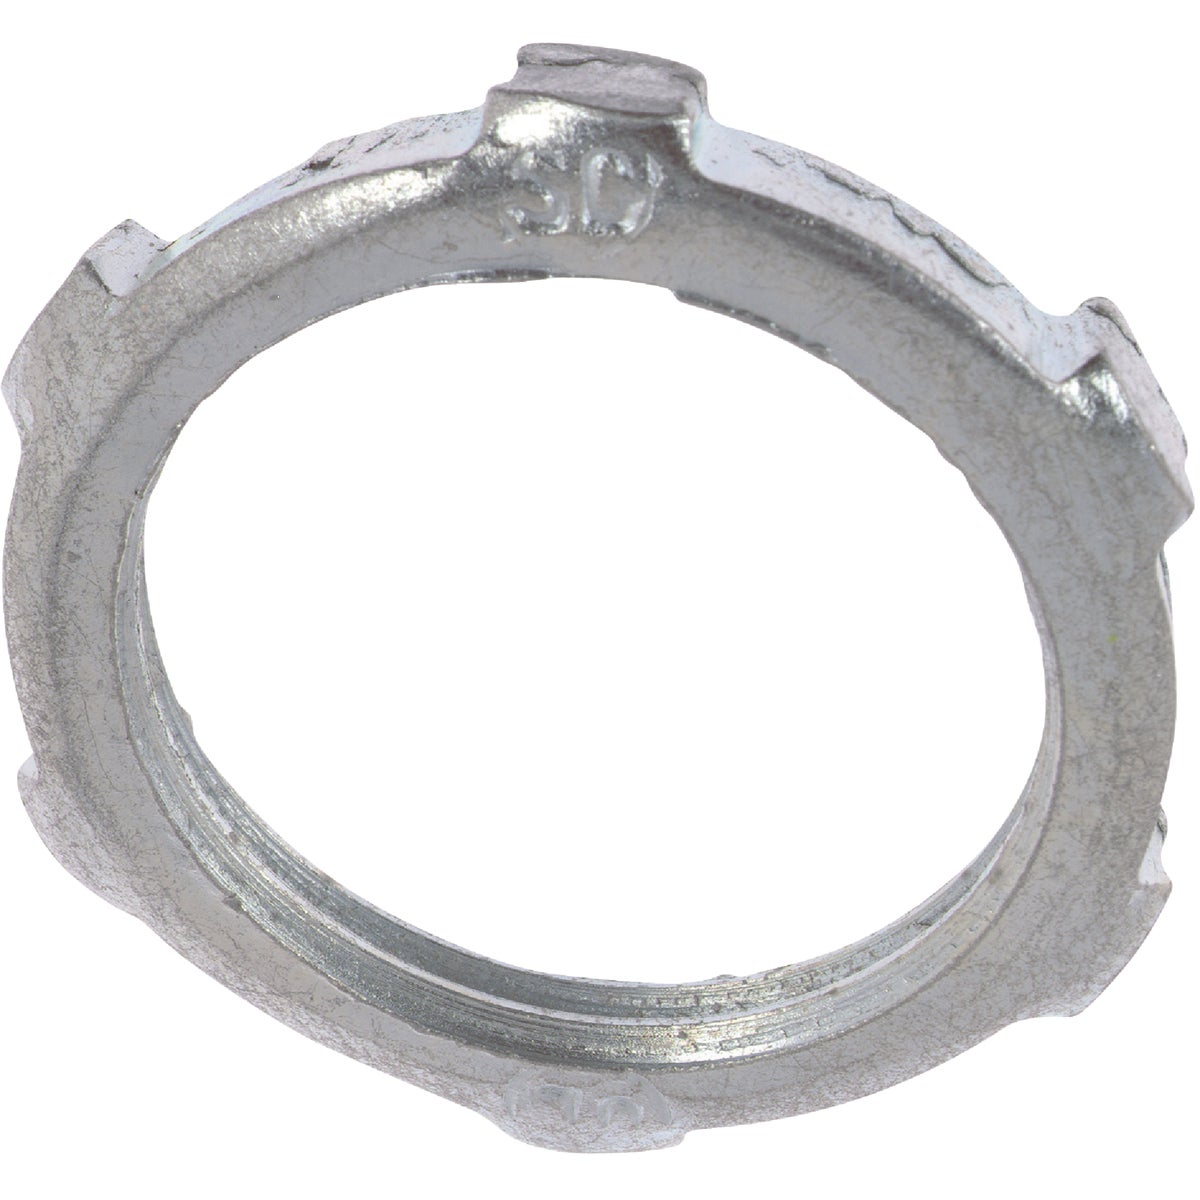 "1-1/4"" LOCKNUT - LN1041 by Thomas & Betts"